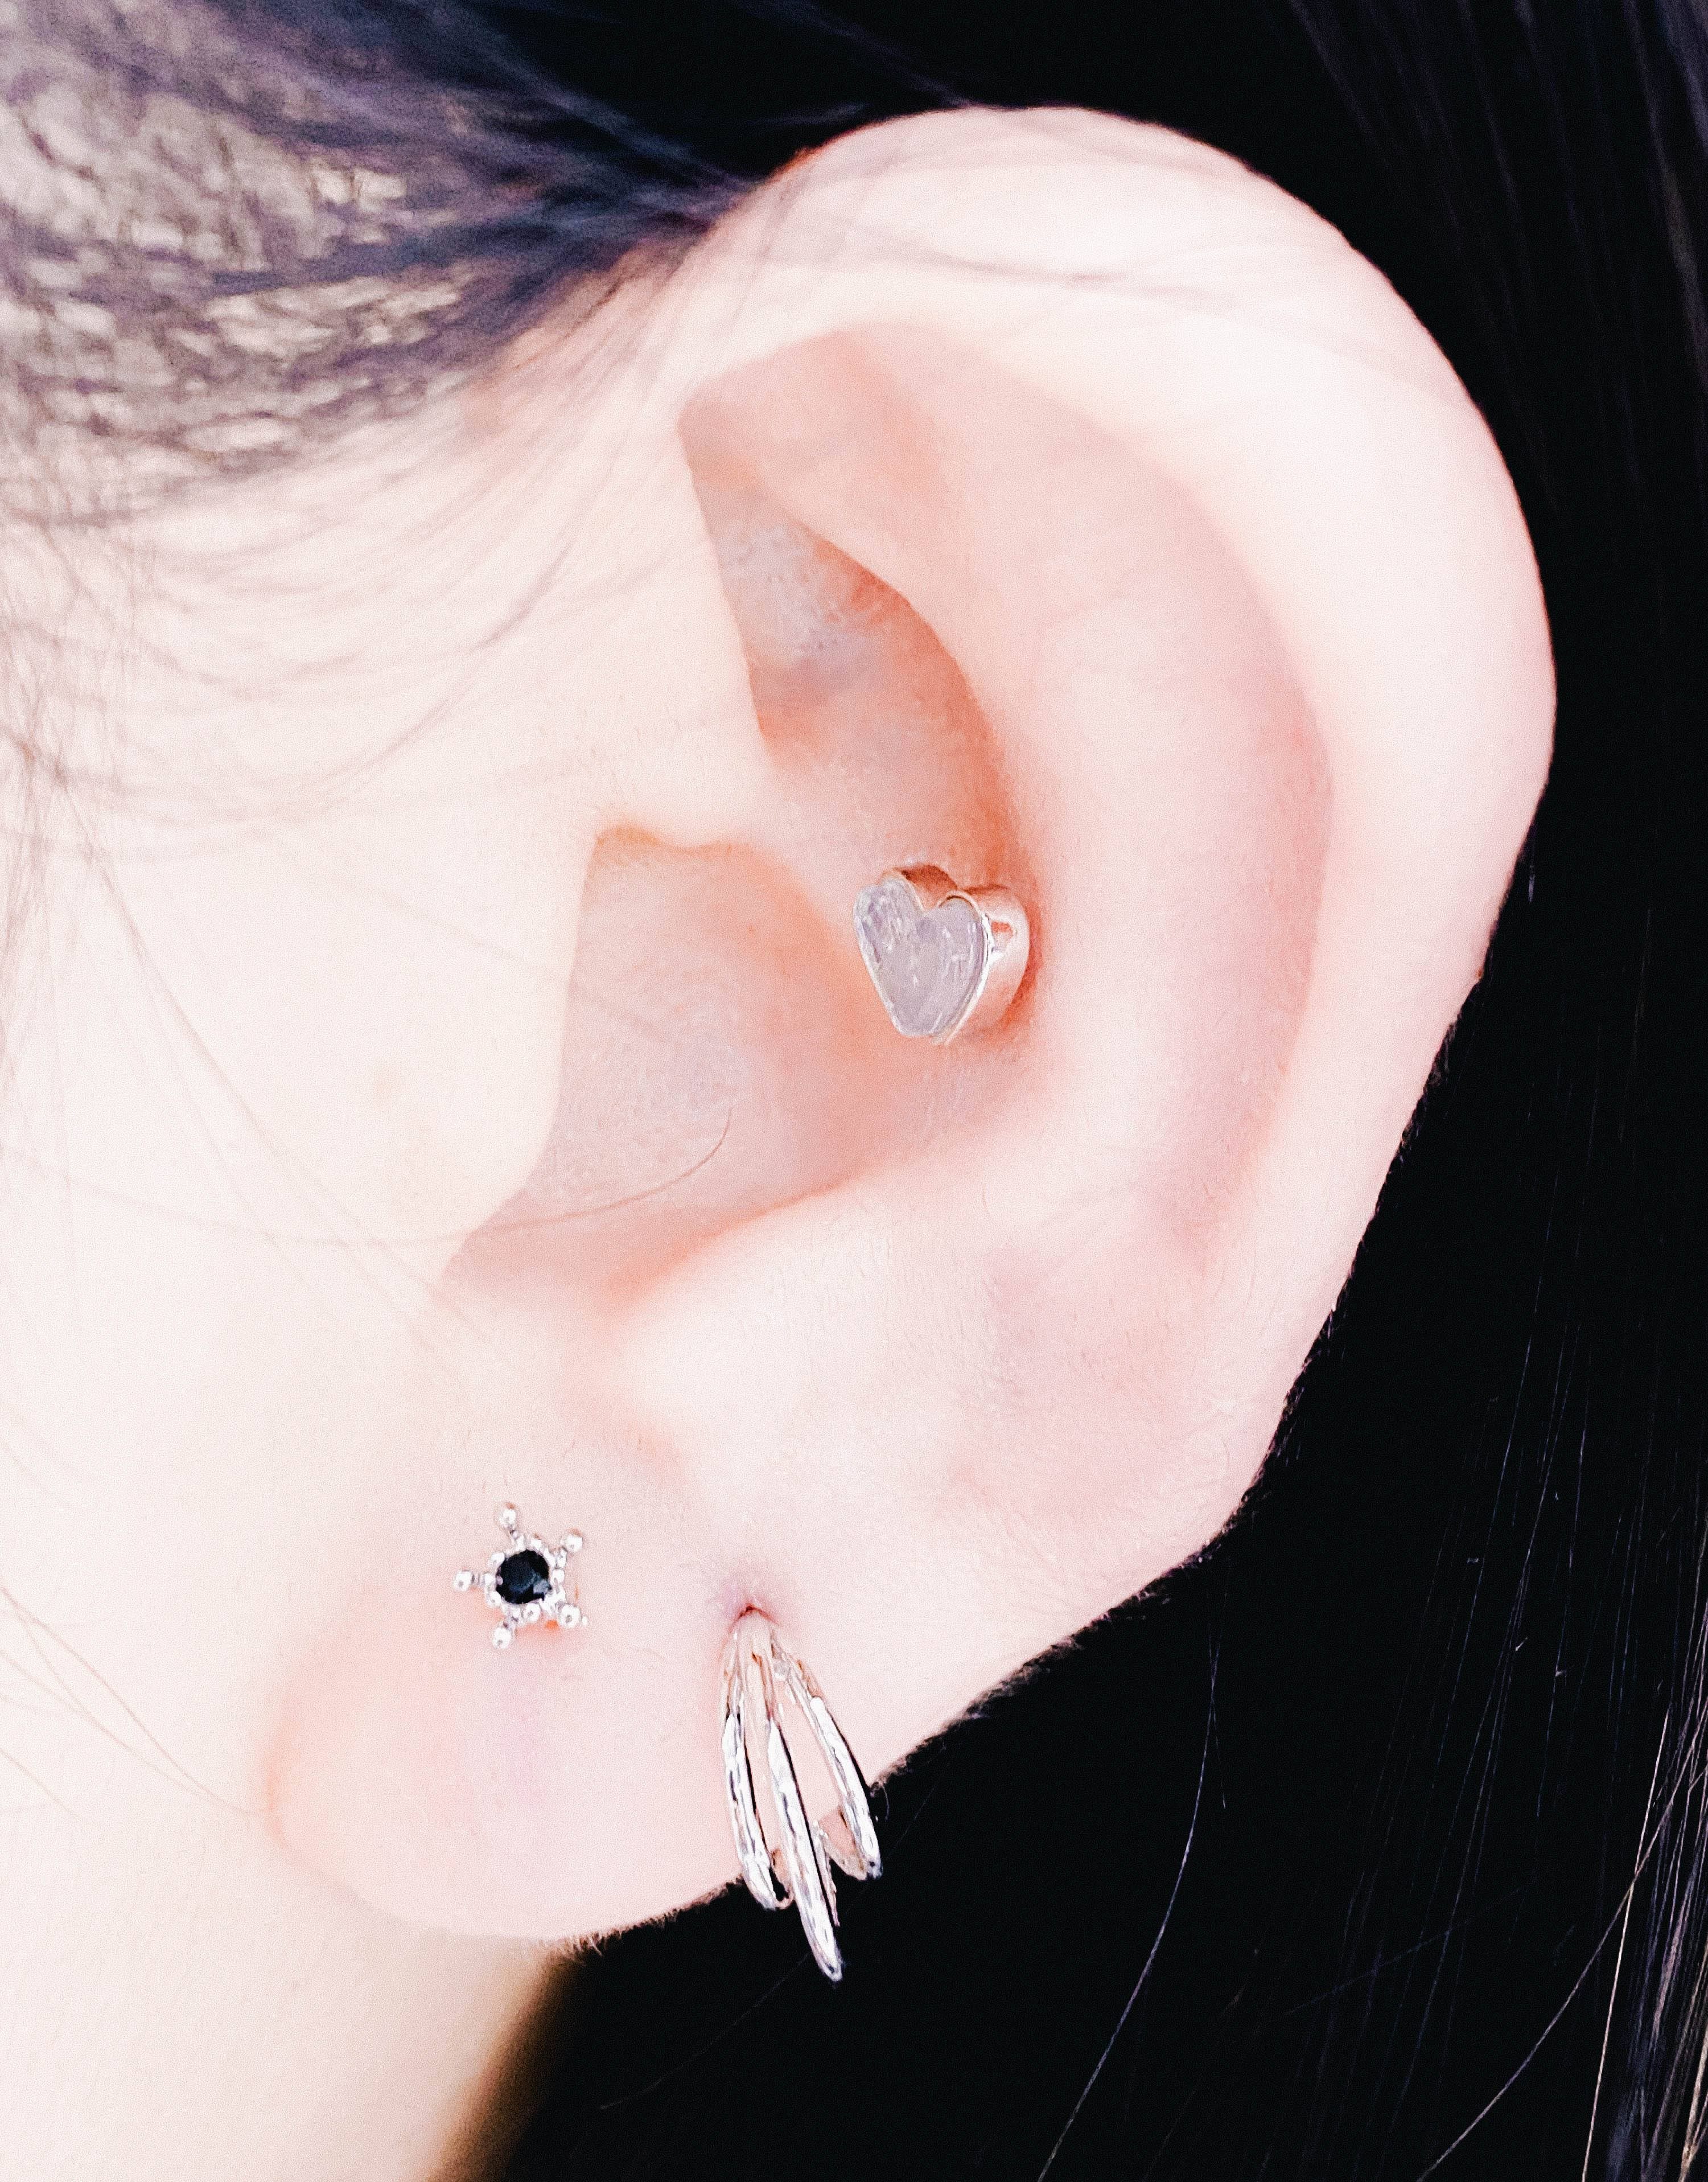 Three layer ピアッシング Piercing anything else